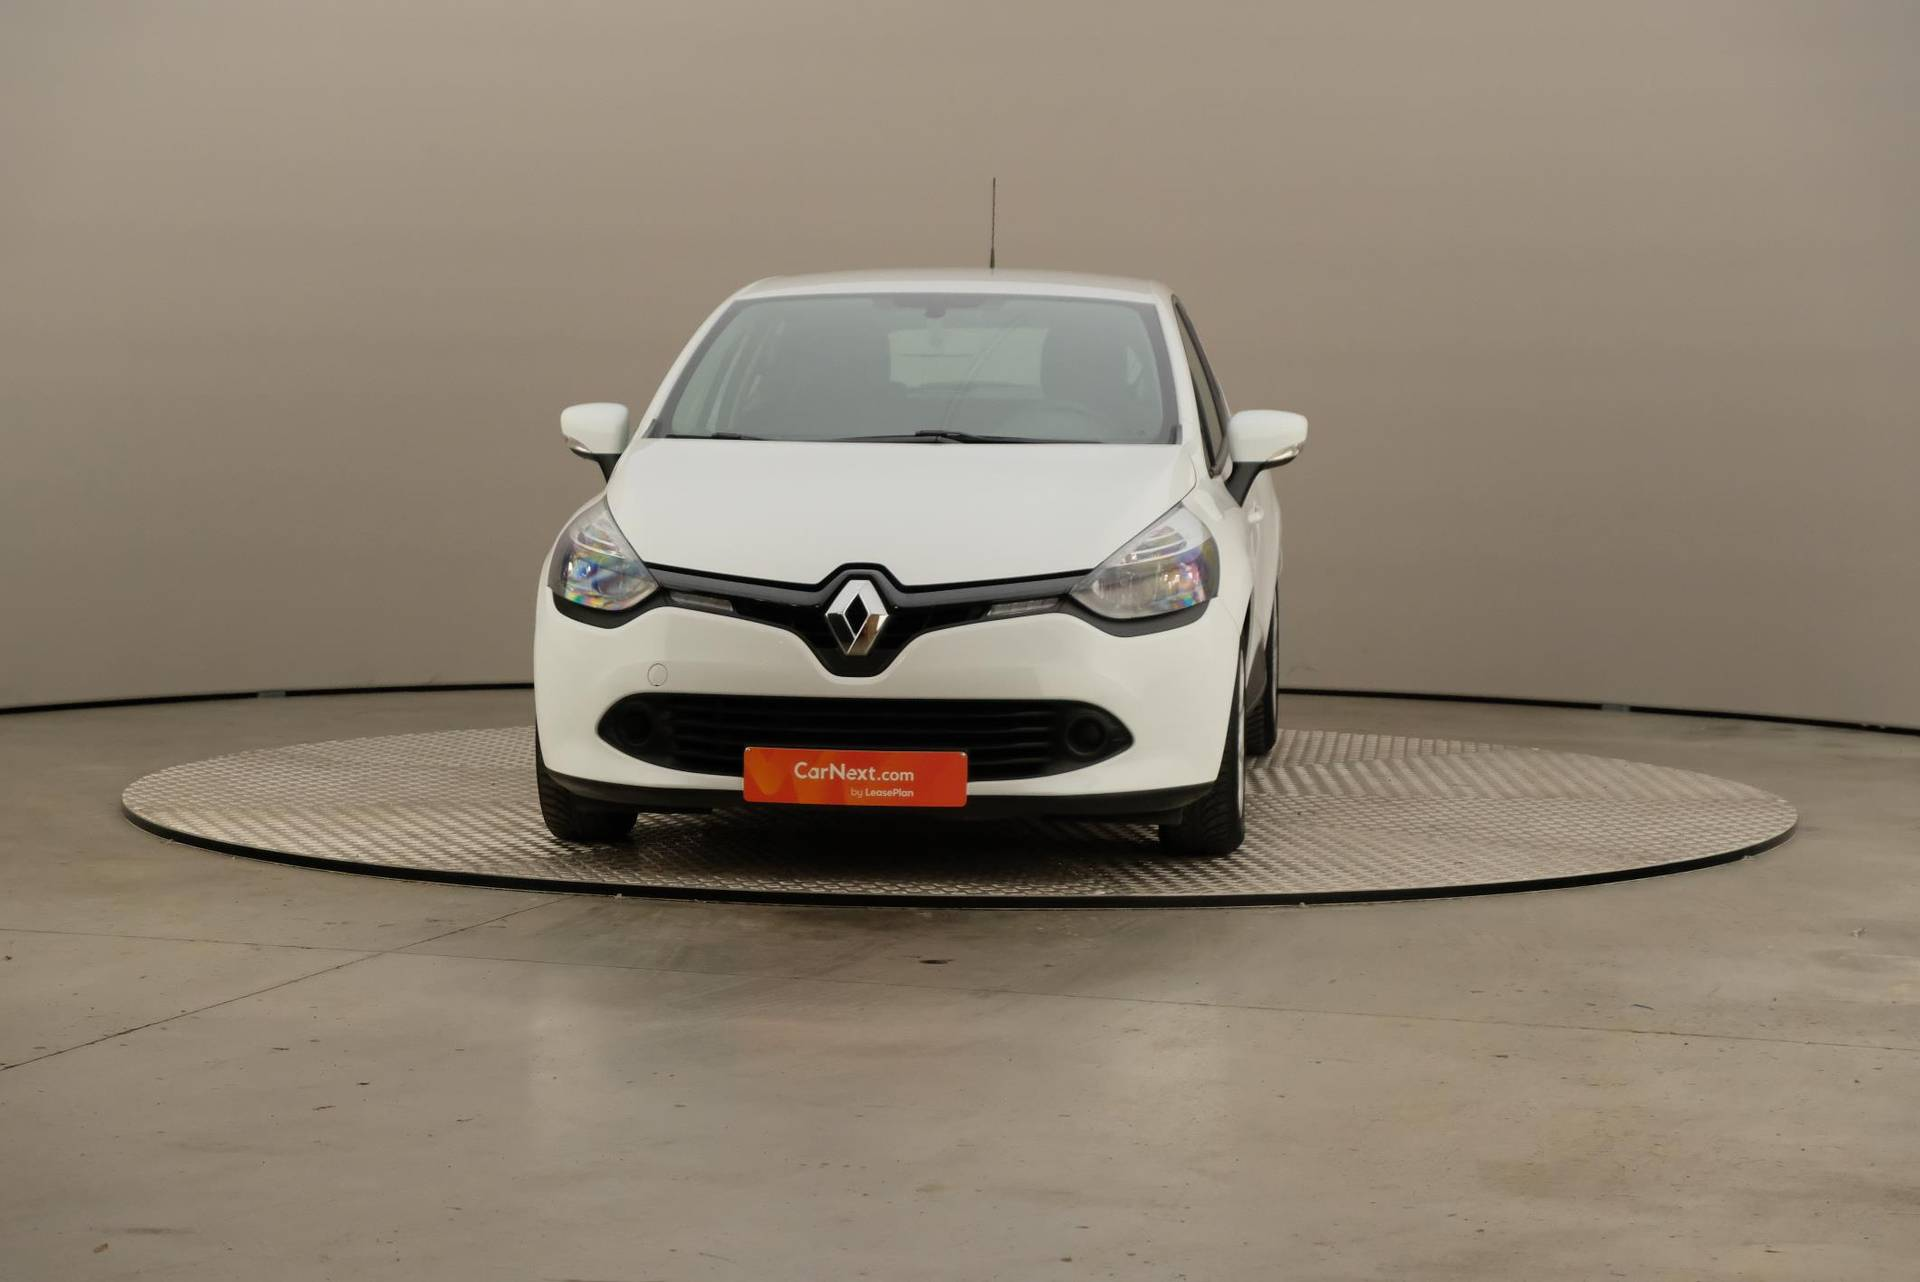 Renault Clio 1.2 16V Collection LED CRUISECONTROL, 360-image32